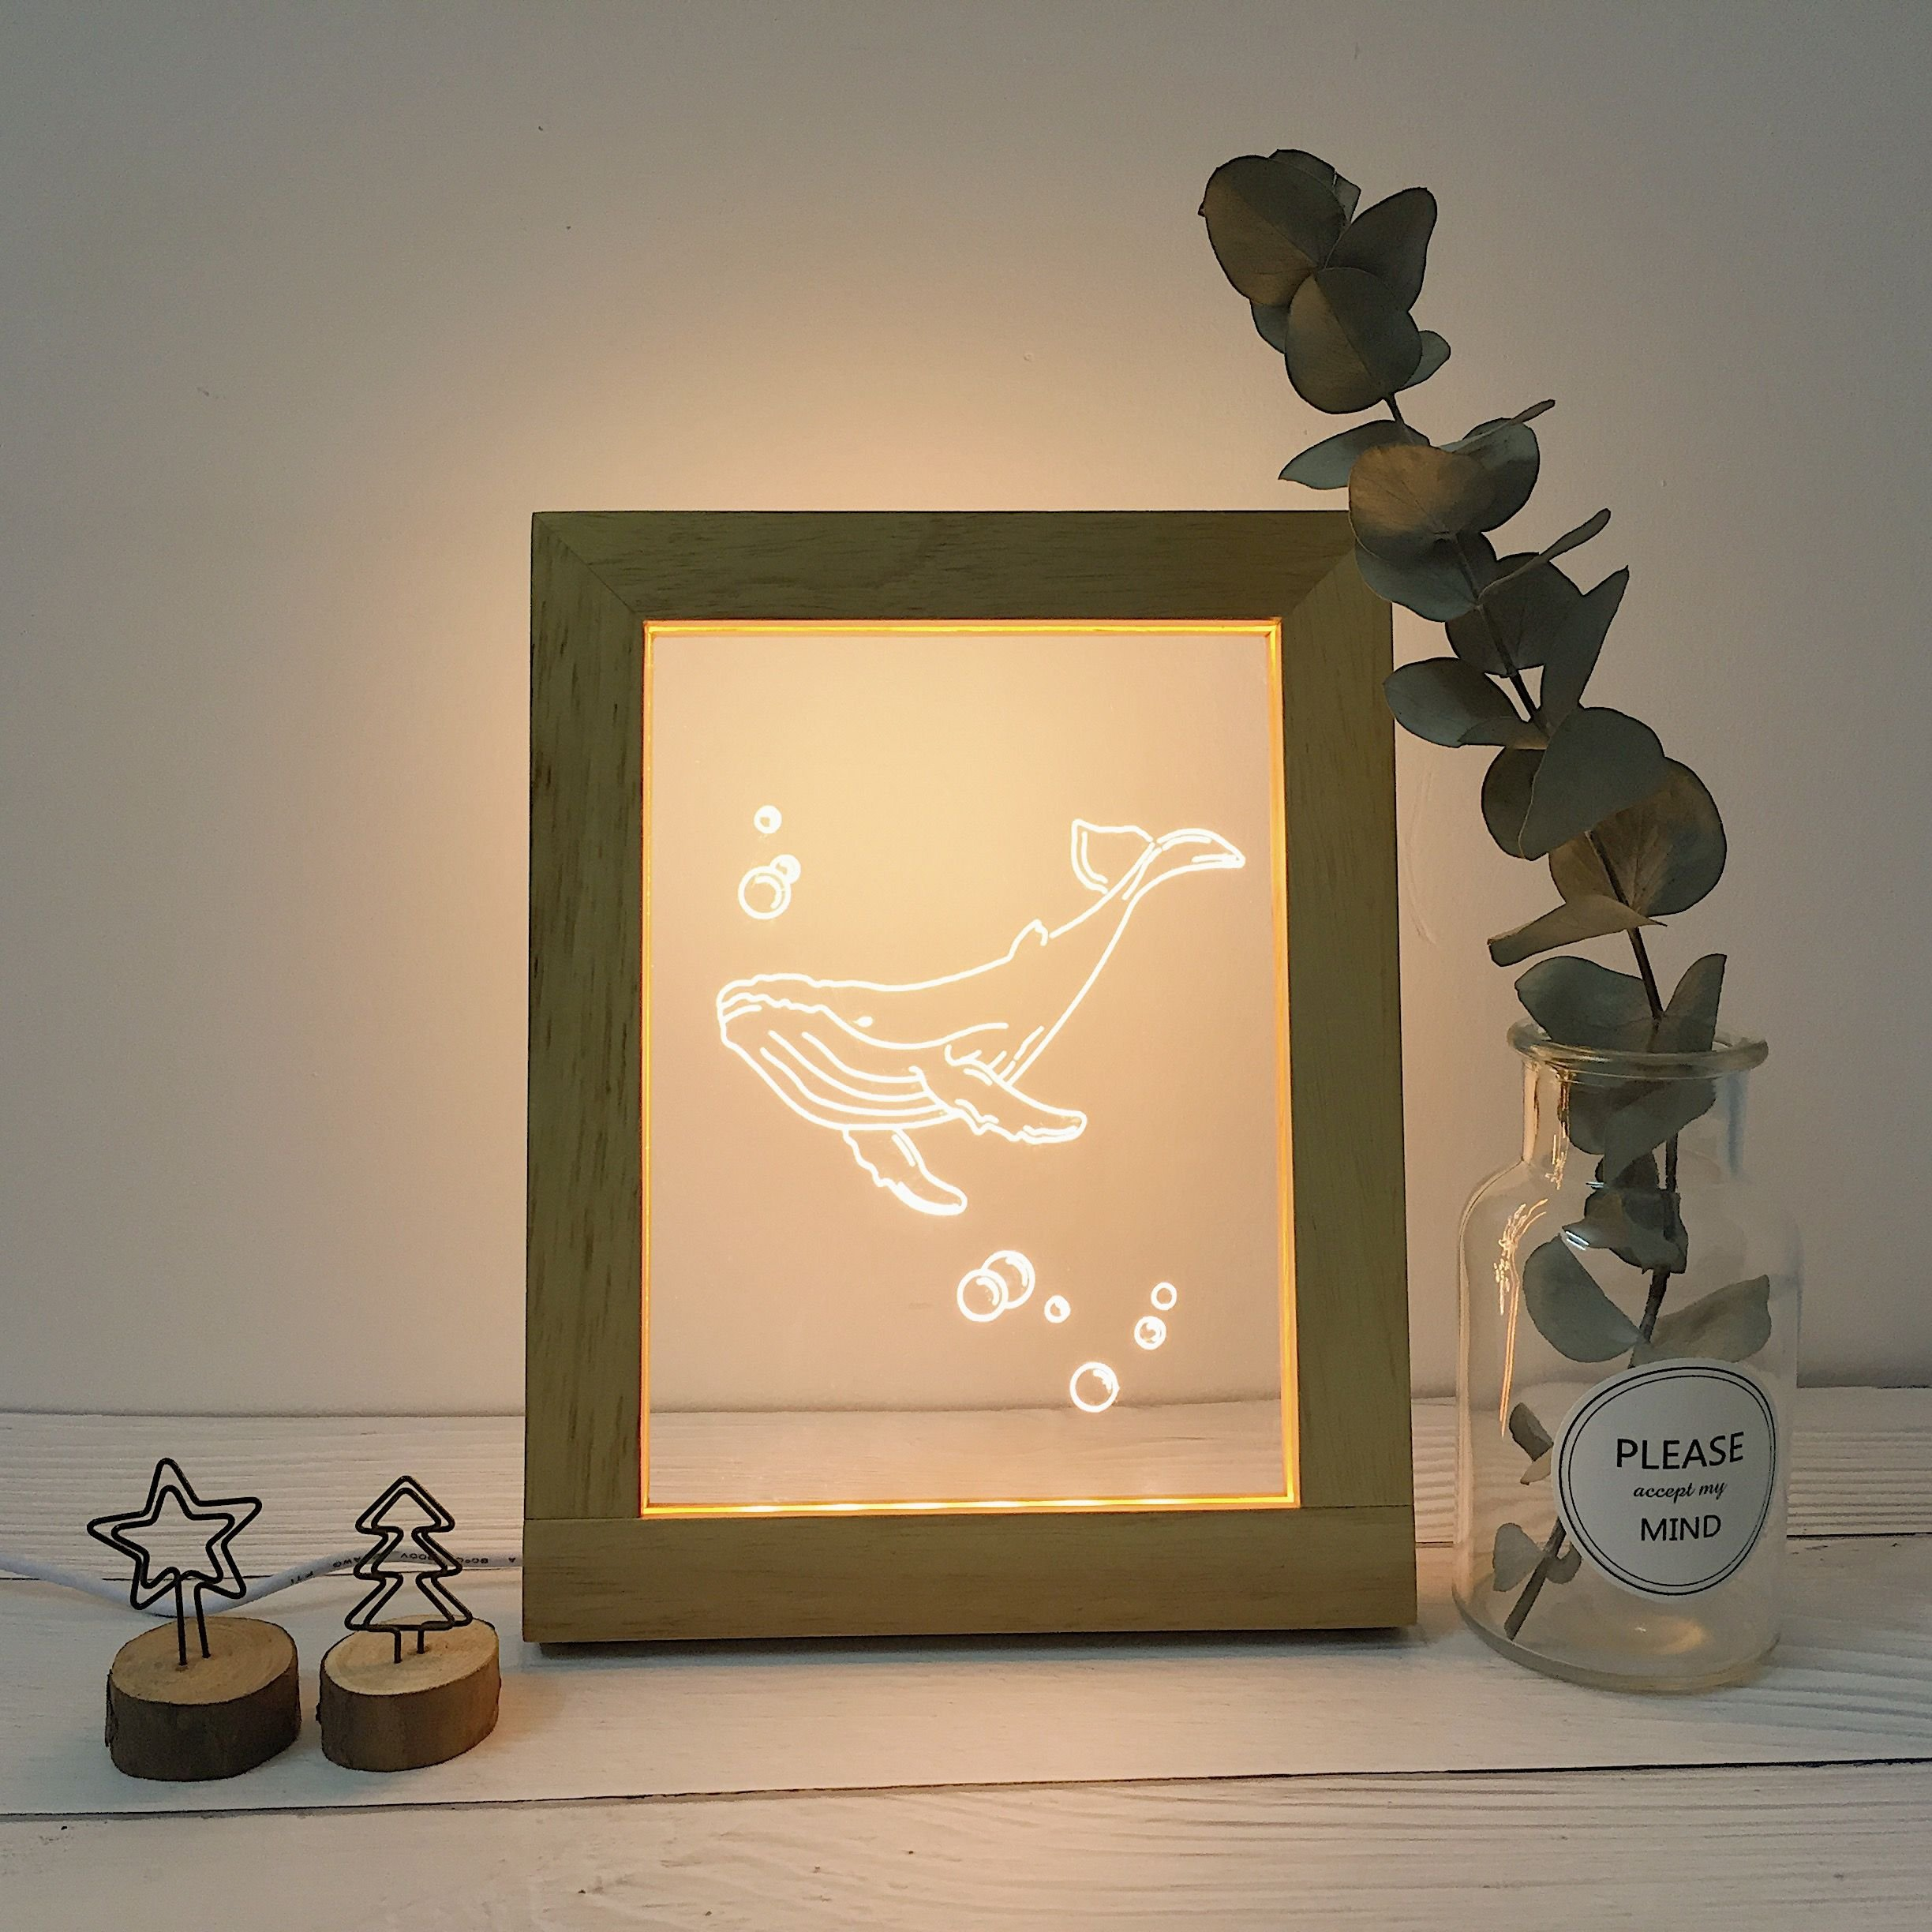 Wood Frame Night Lights, Soft Light Home Decor Lamp for Bedroom Living Room, Whale Night Light for Kids and Adults, Decorate Holiday Party Atmosphere, 4+ style 7.3x9.3x0.8 inches (Cetacean-01)